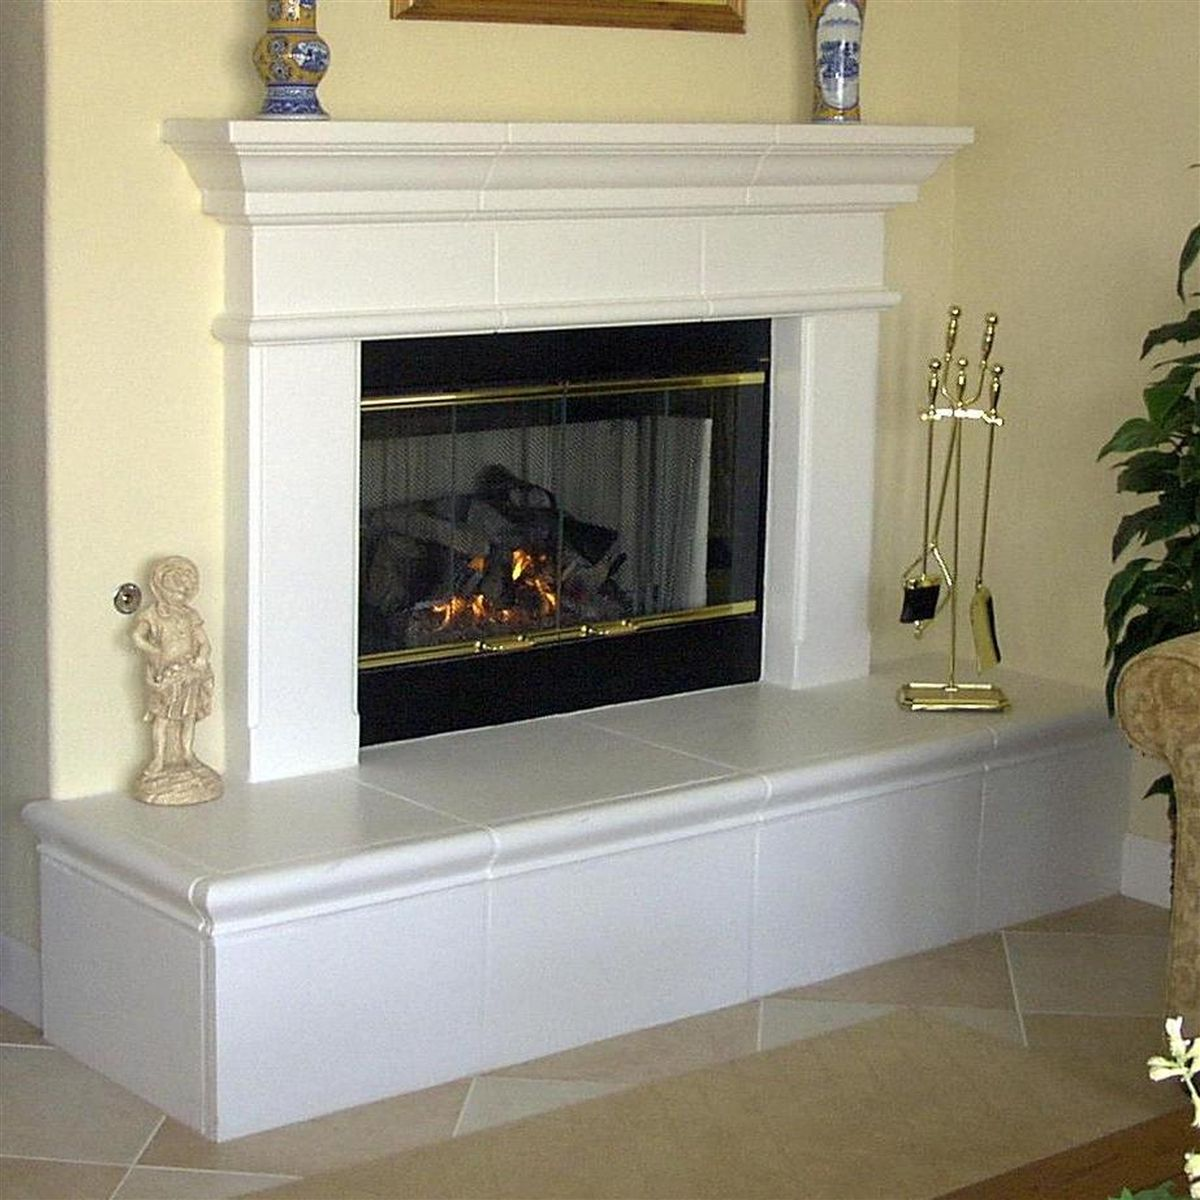 fireplace raised hearth updated with wood trim - Google Search ...